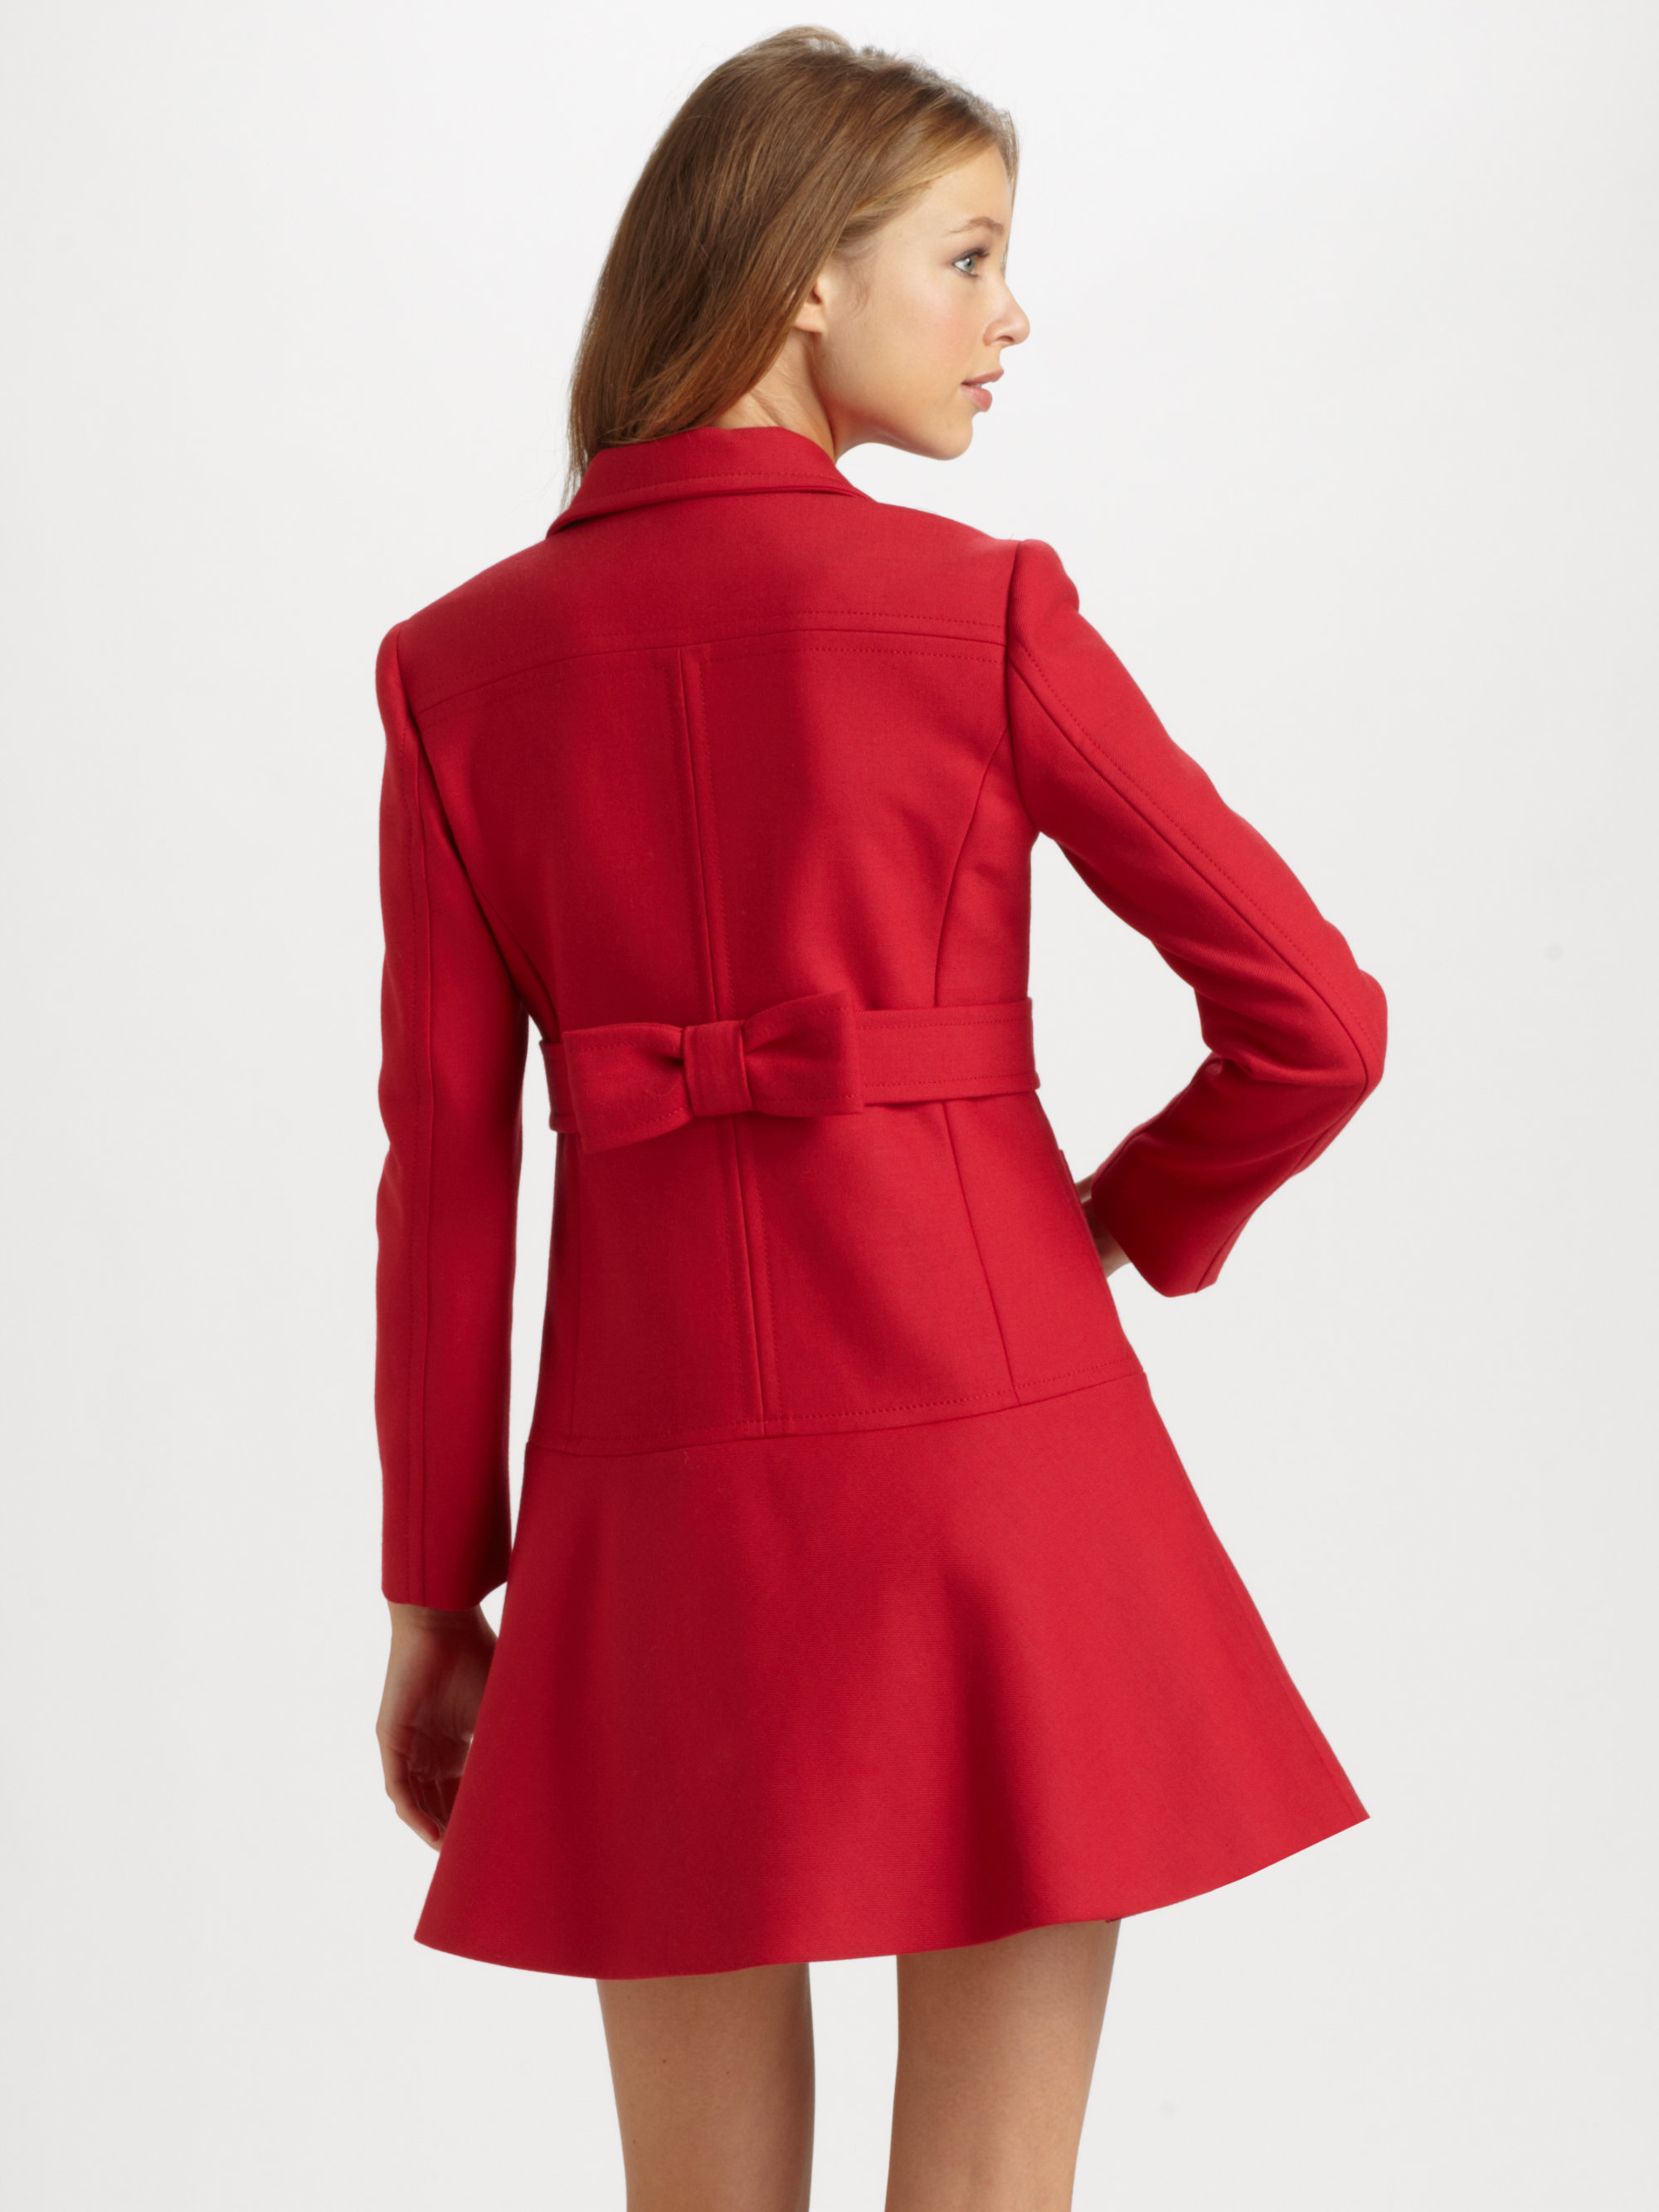 Red Valentino Spring 2016: Red Valentino Cottonwool Bow Coat In Red